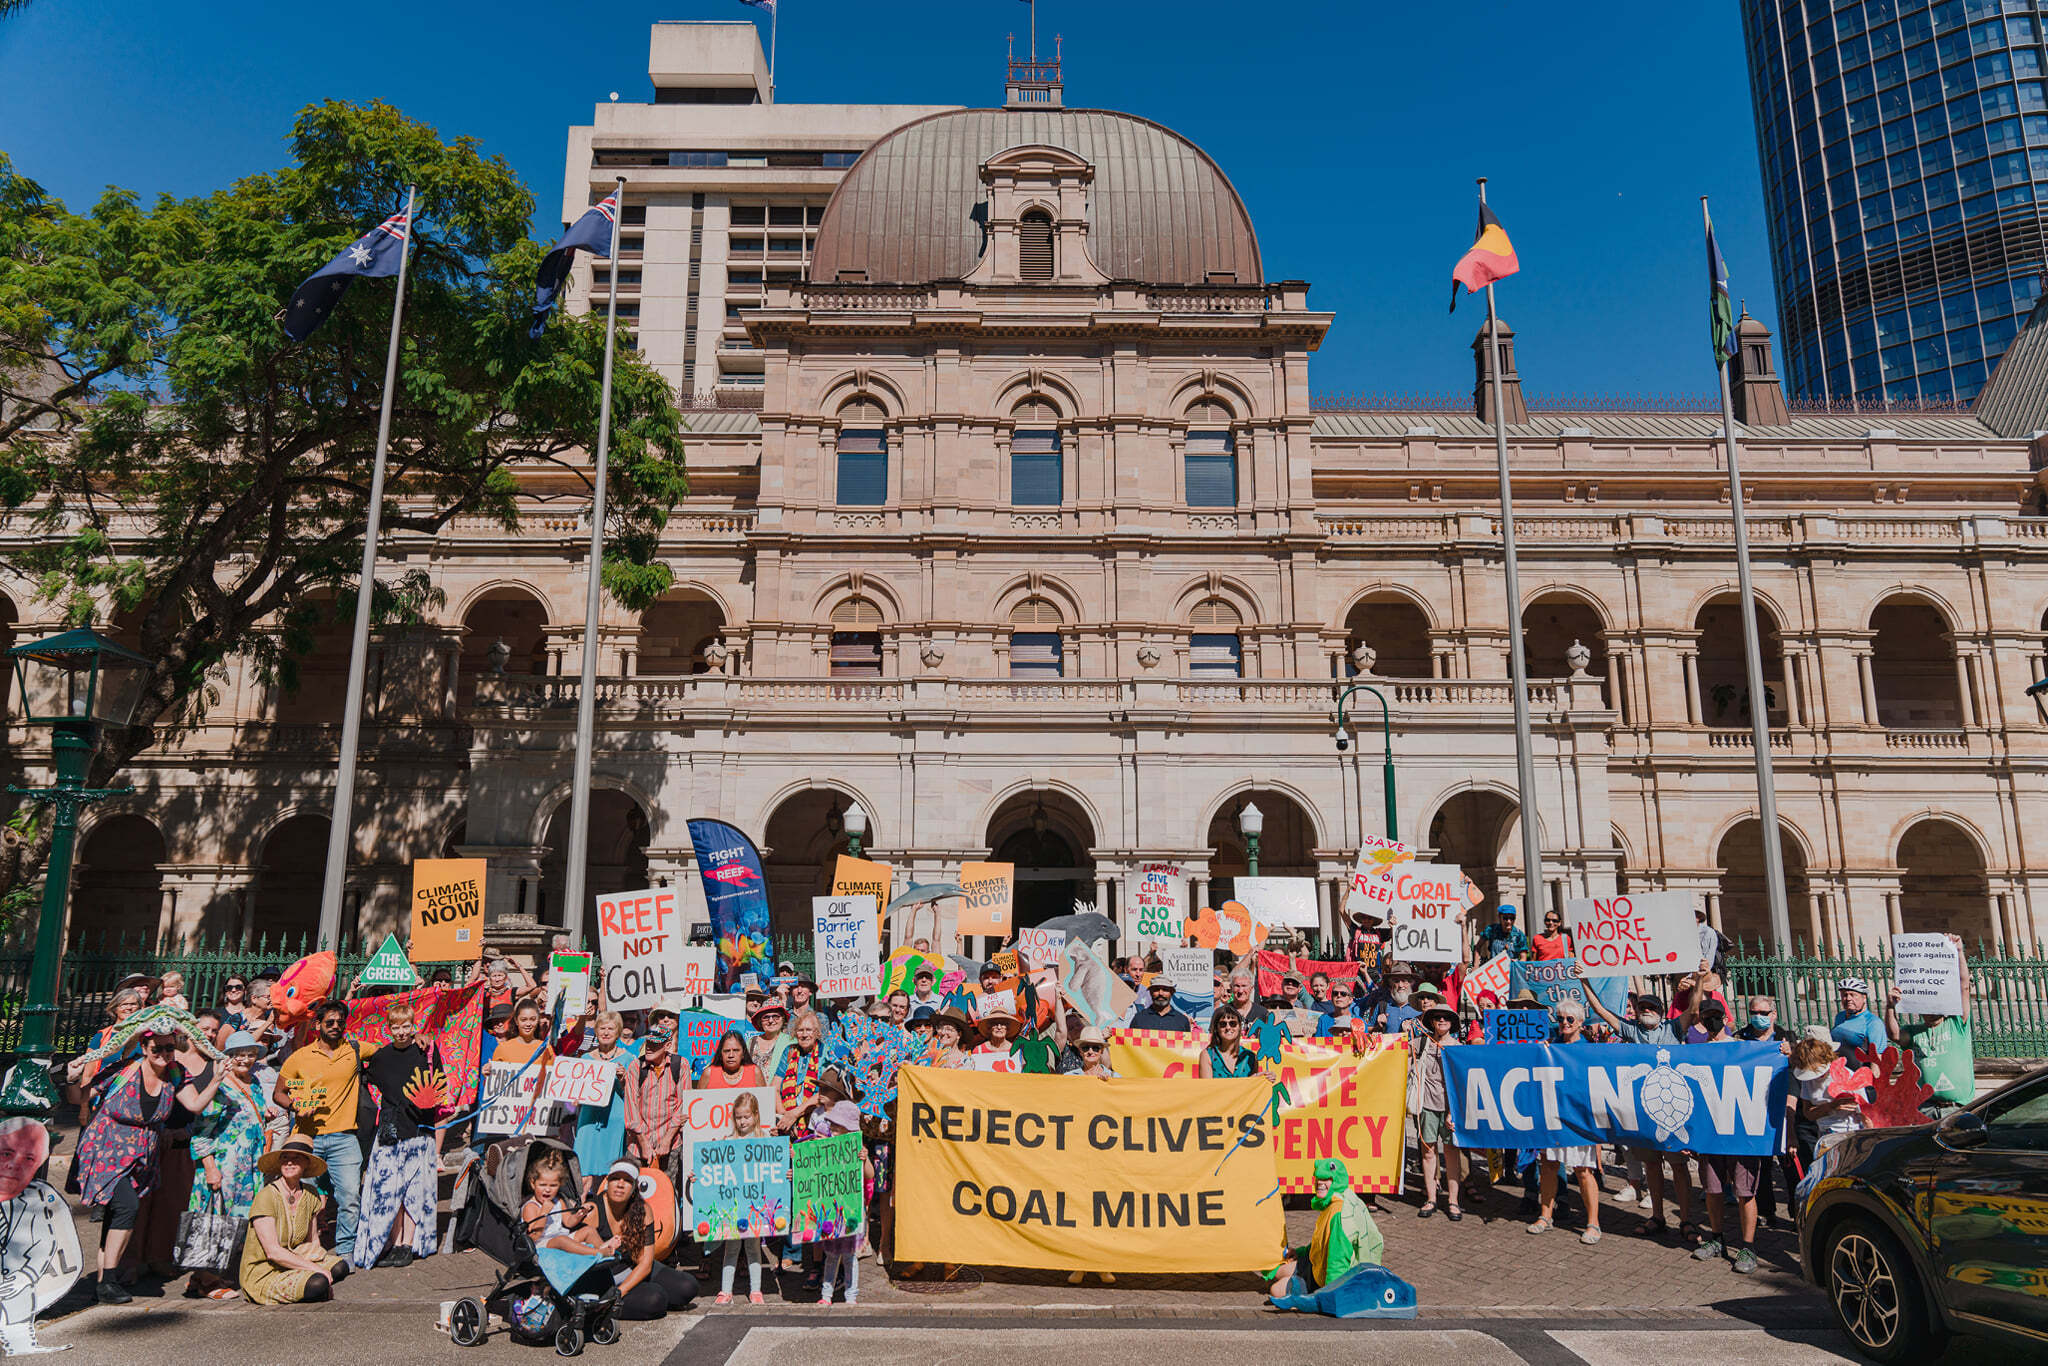 ACF community groups in Queensland speaking up at the Queensland state parliament against Clive Palmer's coal mine